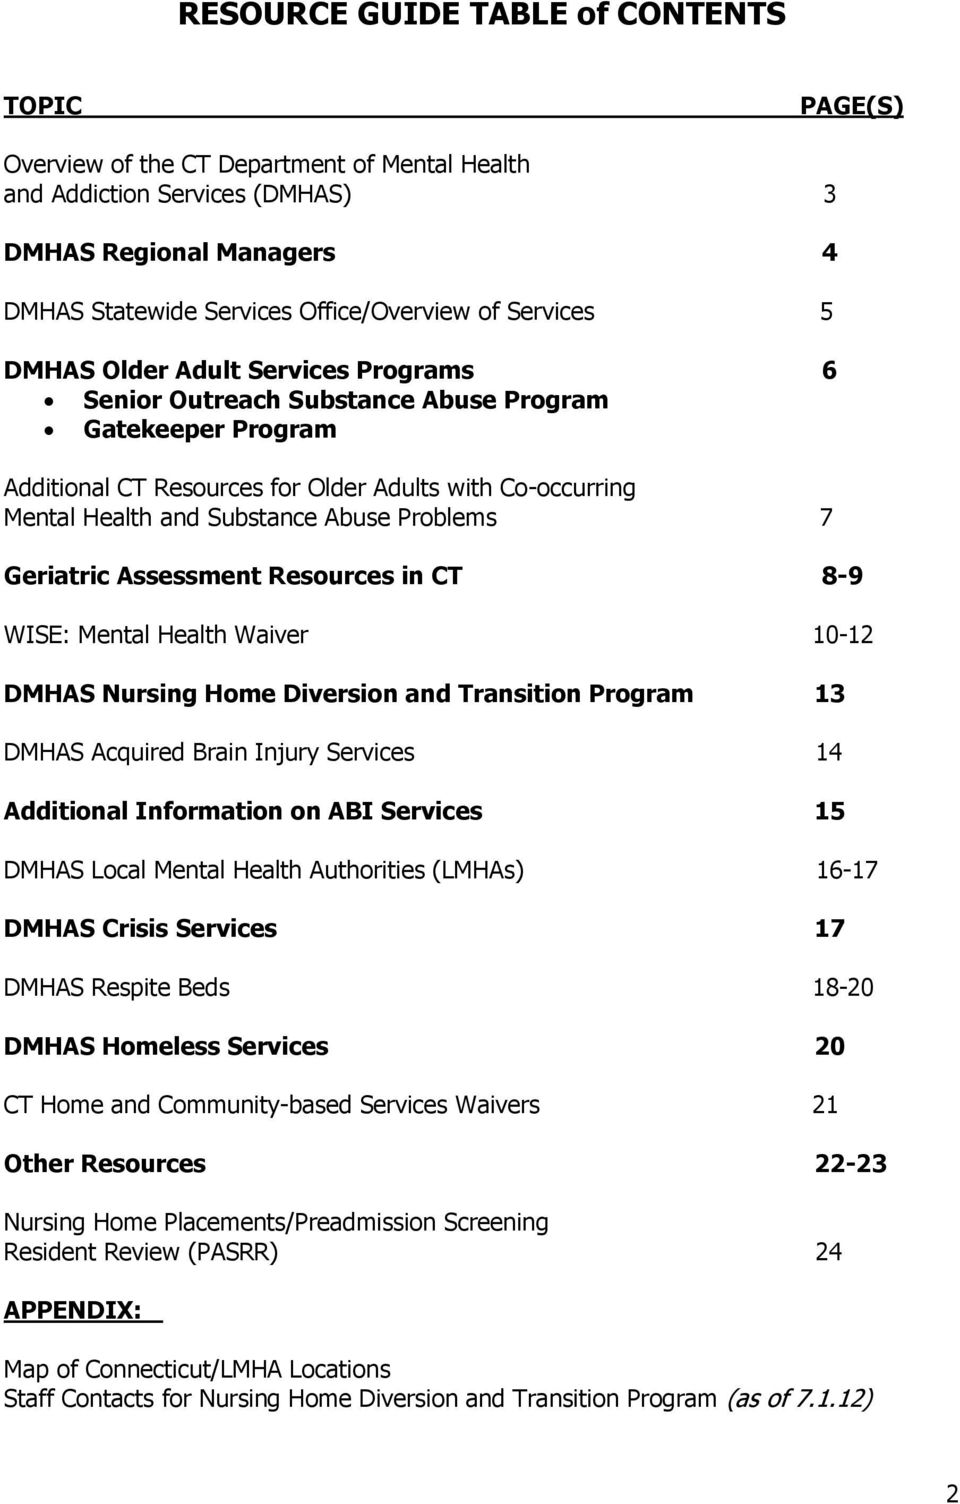 Geriatric Assessment Resurces in CT 8-9 WISE: Mental Health Waiver 10-12 DMHAS Nursing Hme Diversin and Transitin Prgram 13 DMHAS Acquired Brain Injury Services 14 Additinal Infrmatin n ABI Services